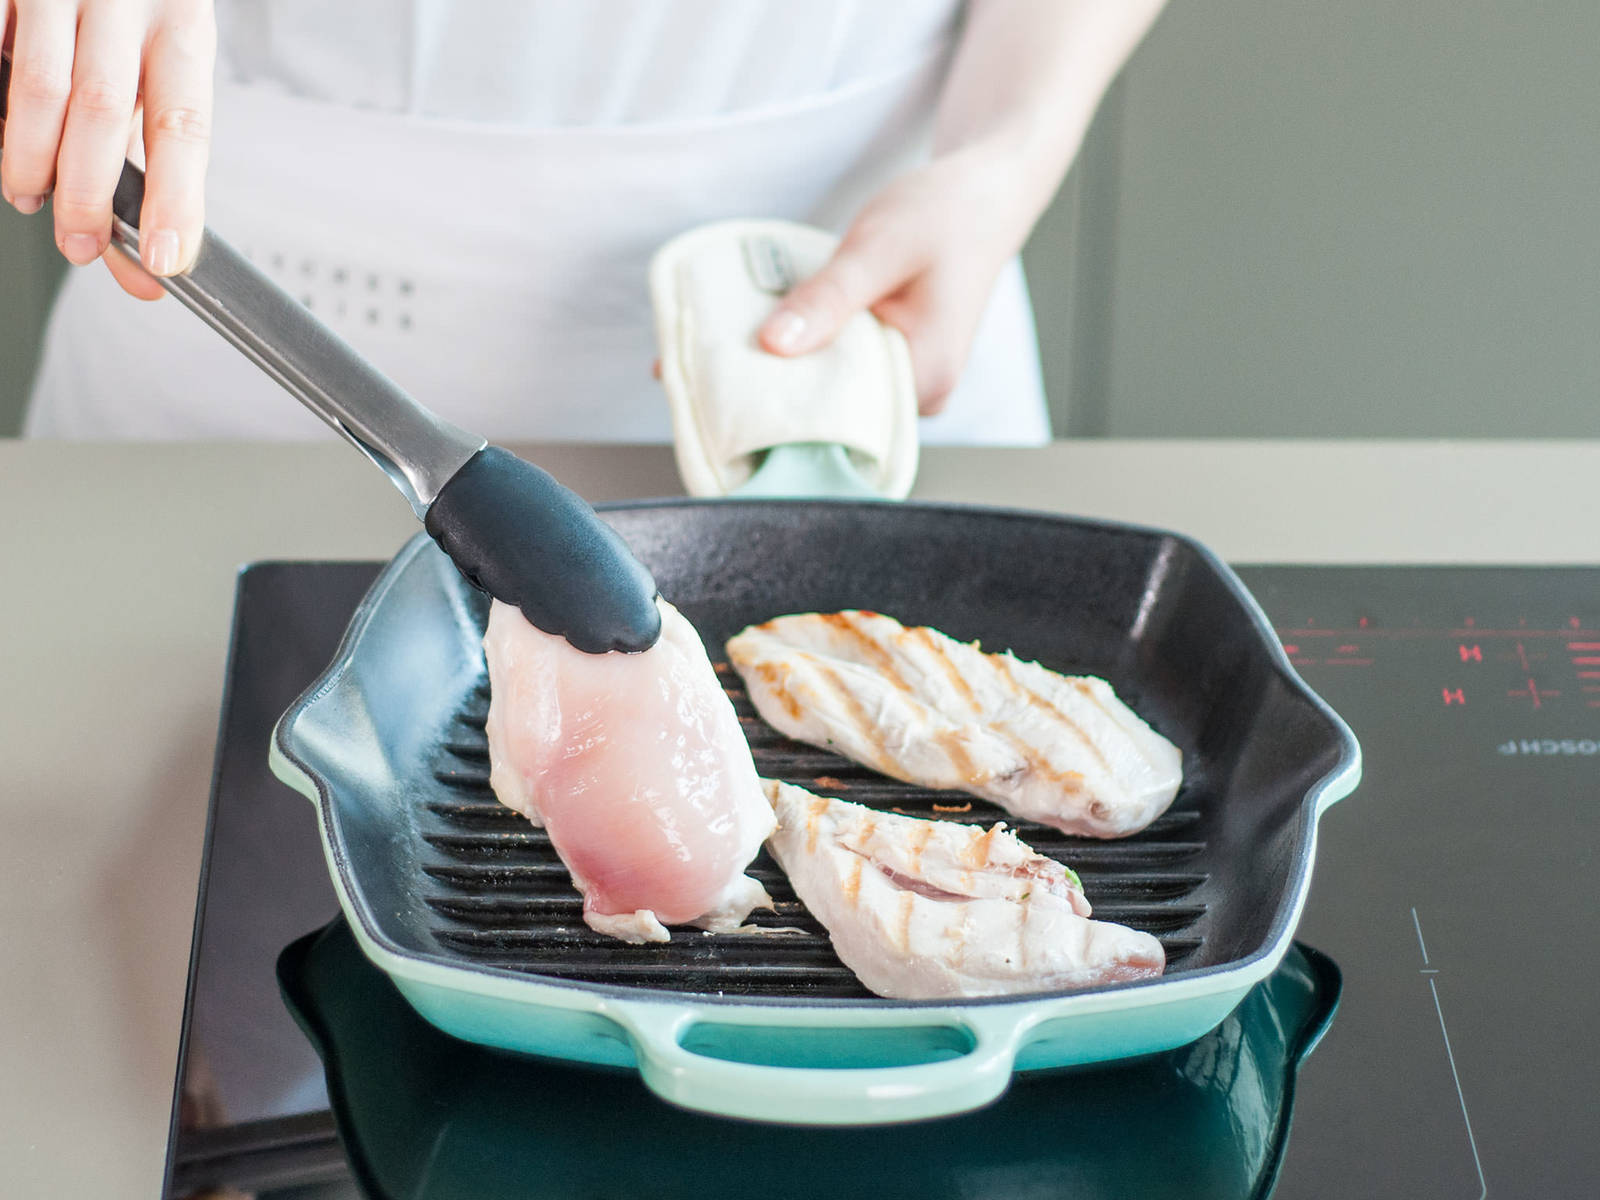 Heat grill to medium-high heat and brush with a little oil if needed. When hot, grill chicken, turning once, until cooked through, approx. 5 min. per side.